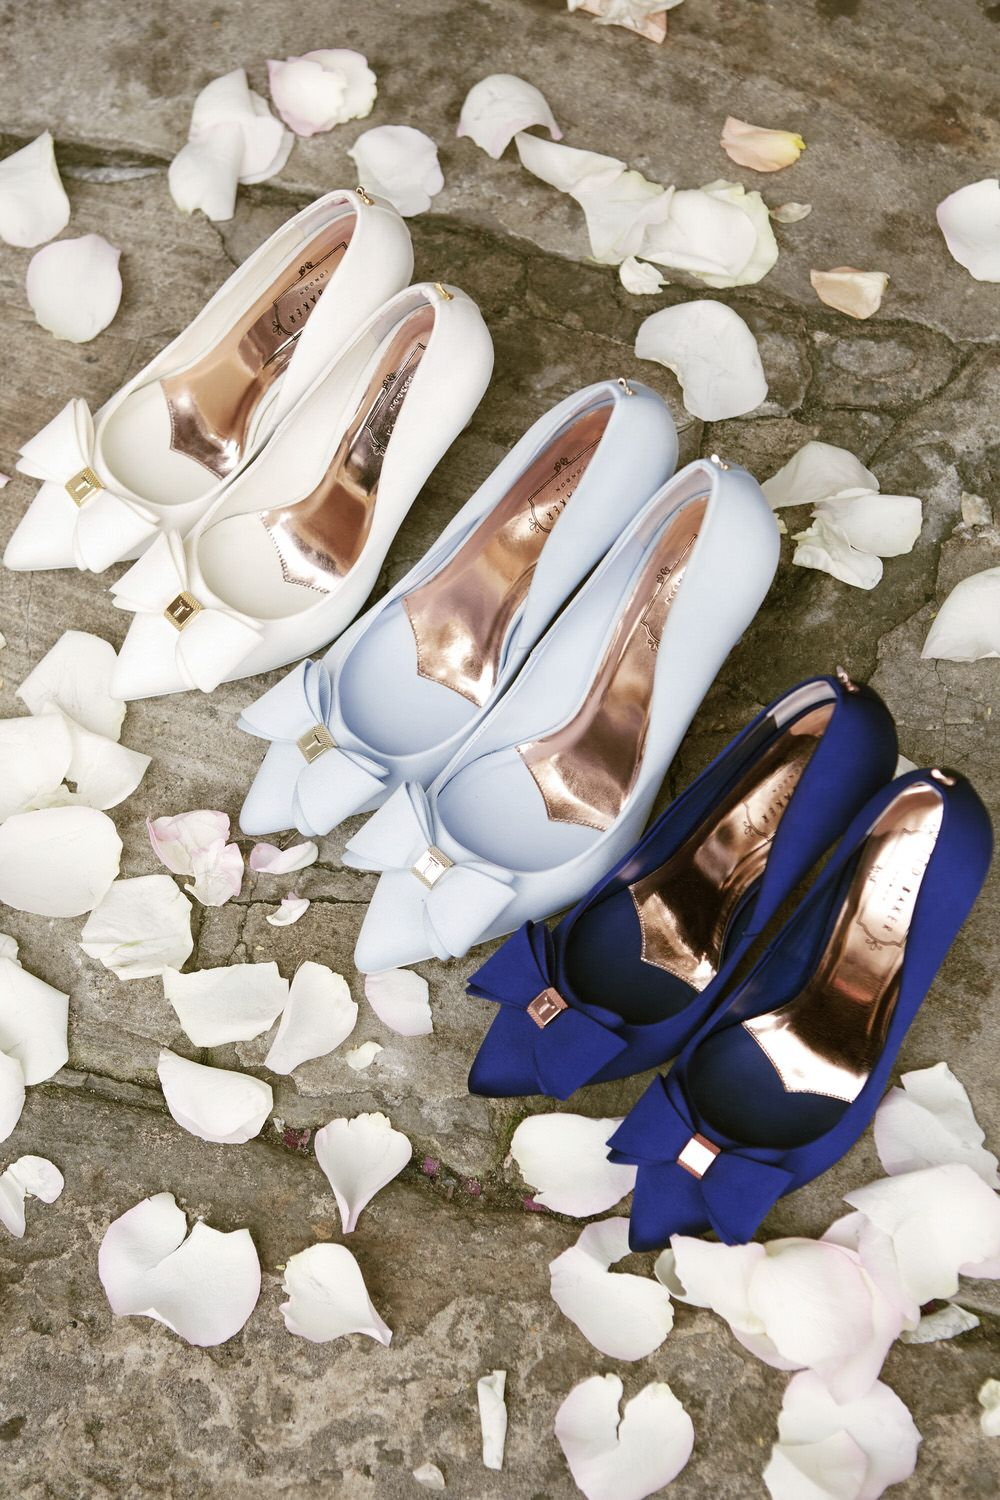 Ted baker shoes, Blue wedding shoes